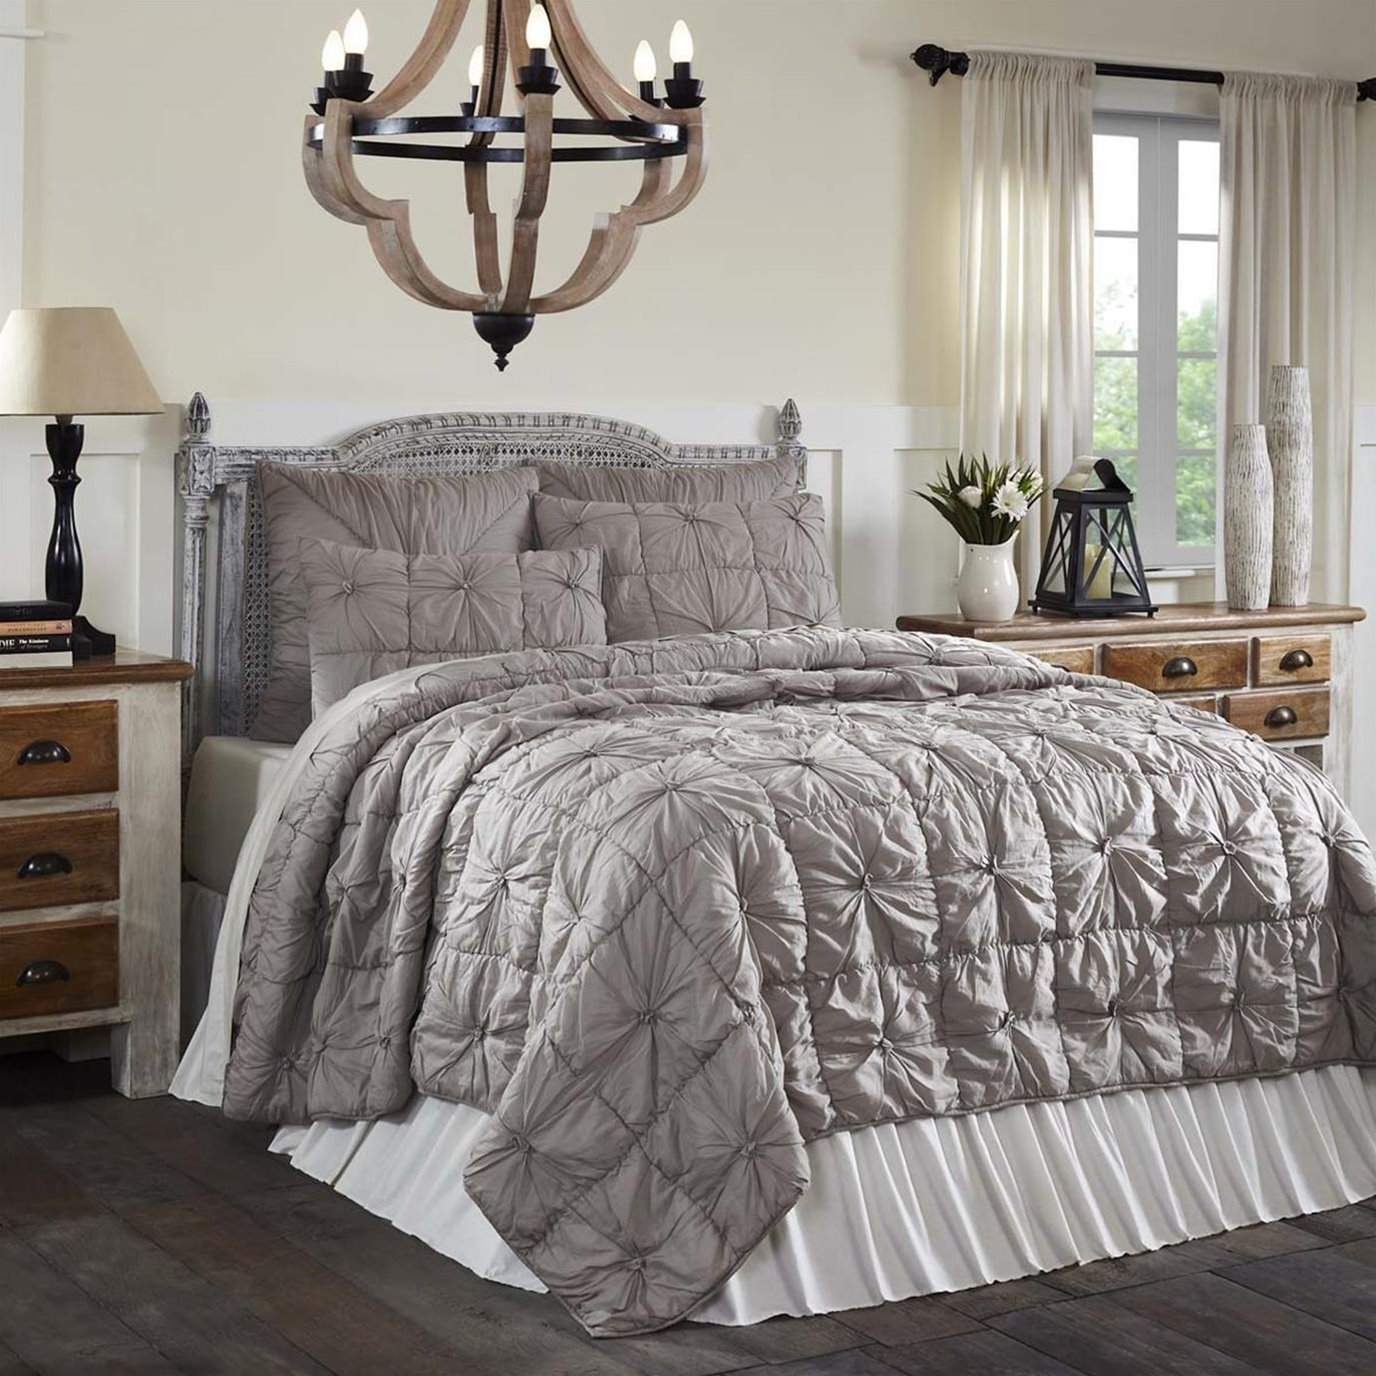 Camille Taupe Queen Set; Quilt 90Wx90L-2 Shams 21x27